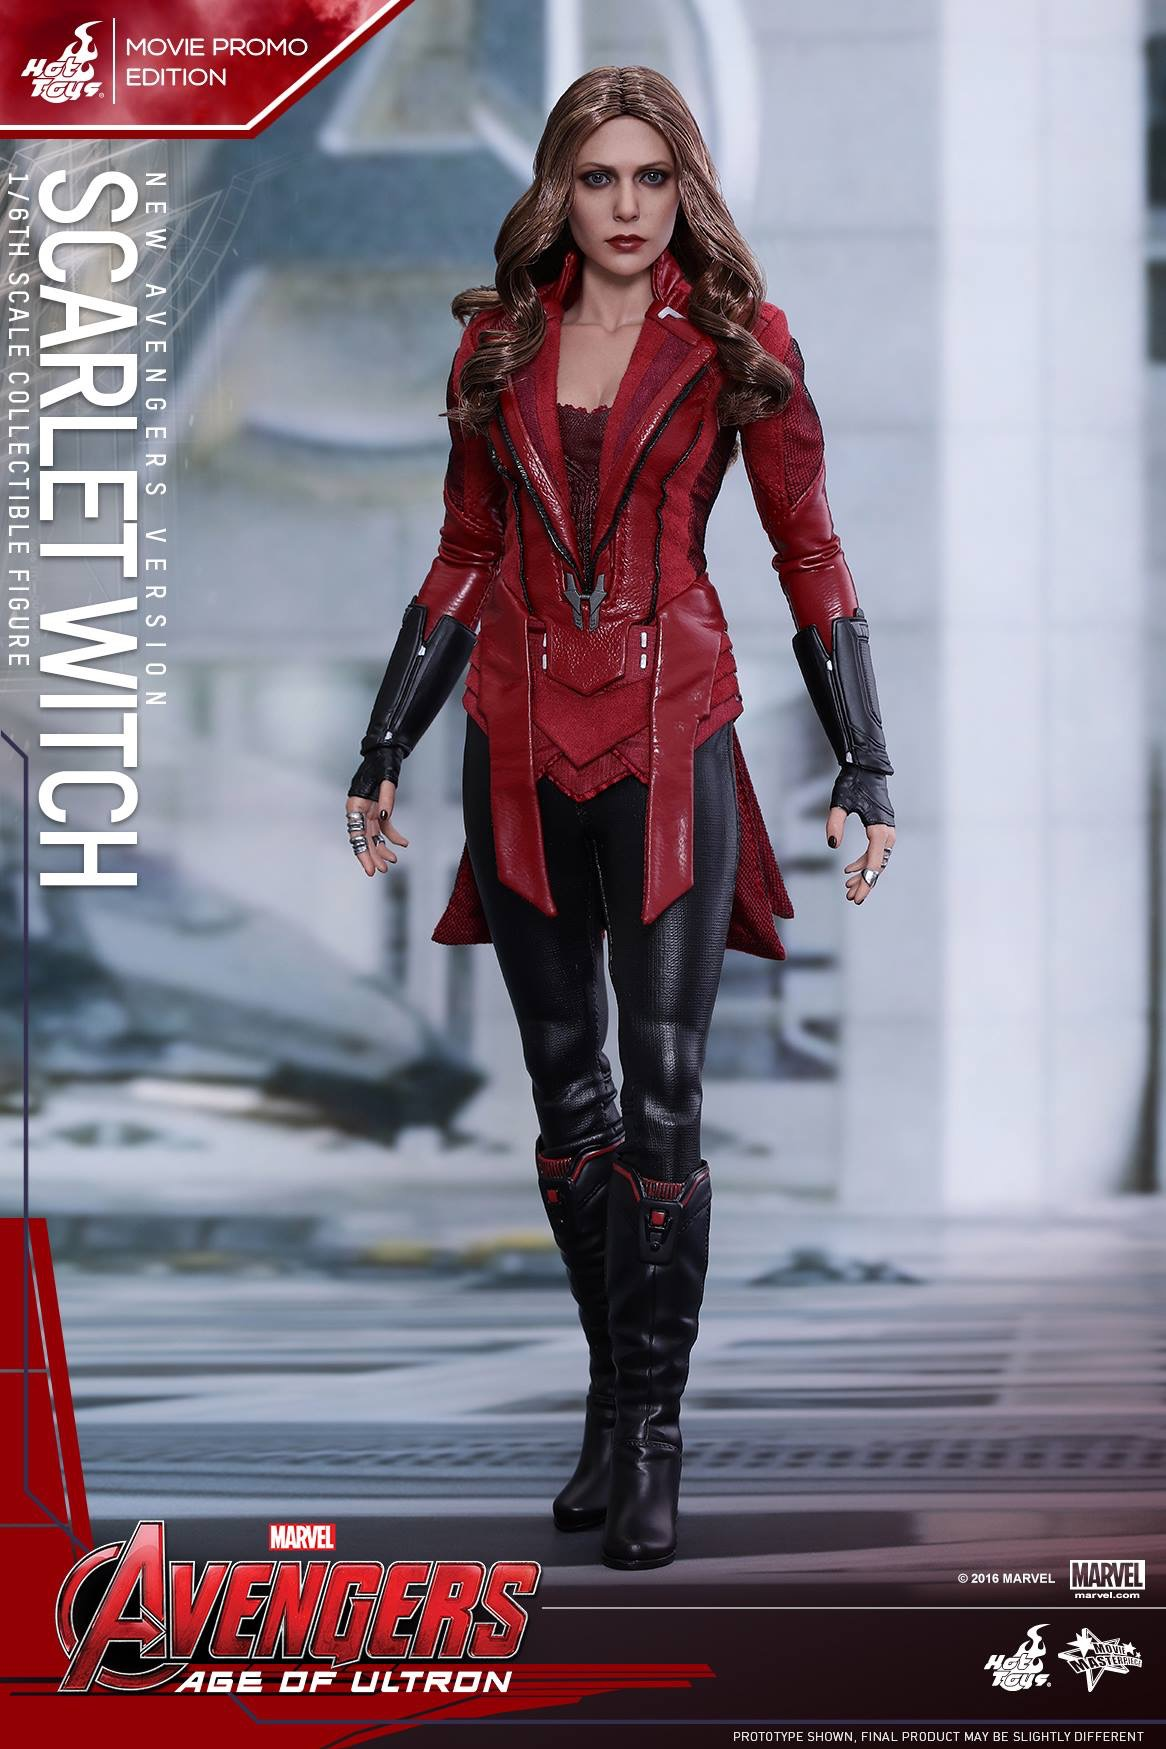 AVENGERS 2 : AGE OF ULTRON - SCARLET WITCH (MM$357) 160415024940506625